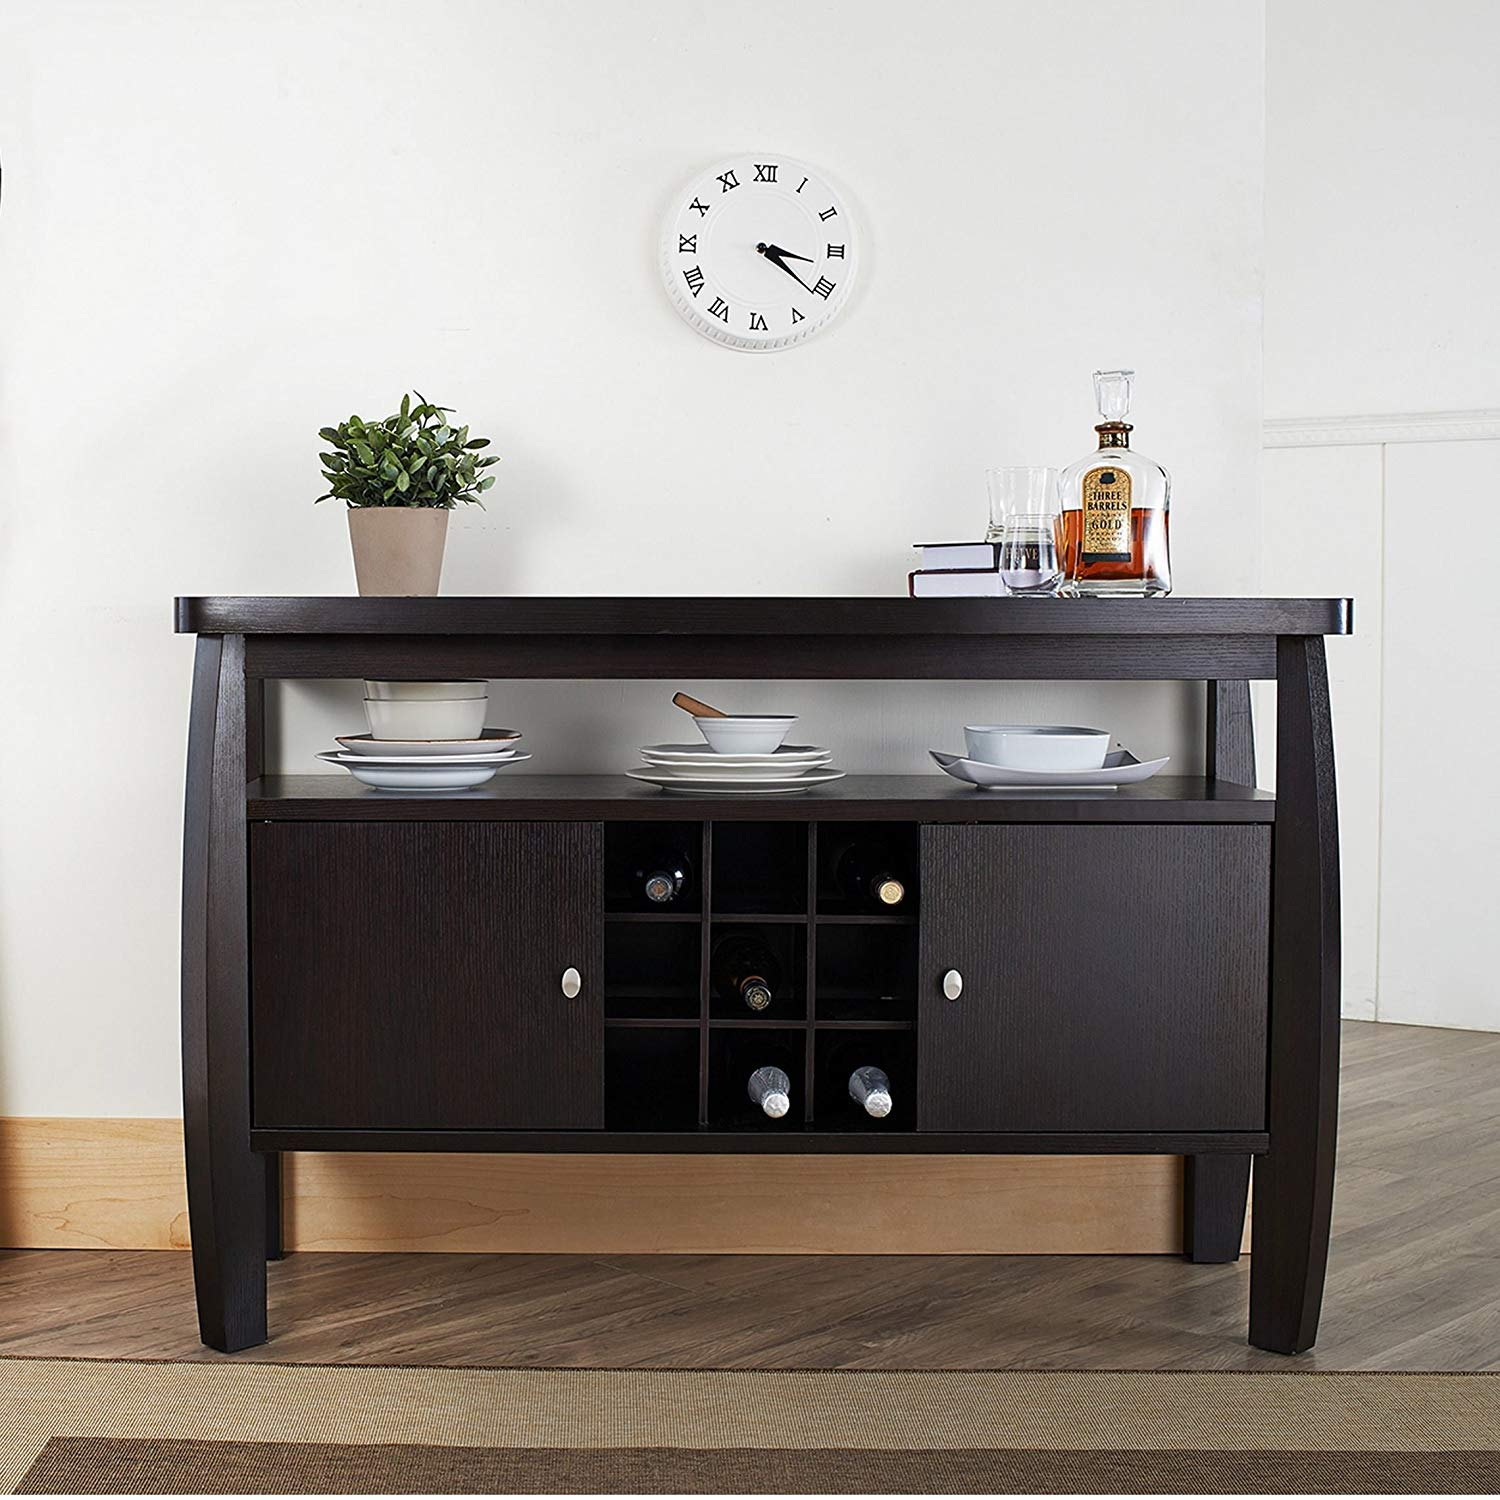 Charmant Contemporary Buffet Table, Wide Open Storage Shelf Underneath The Table  Top, Two Door Storage